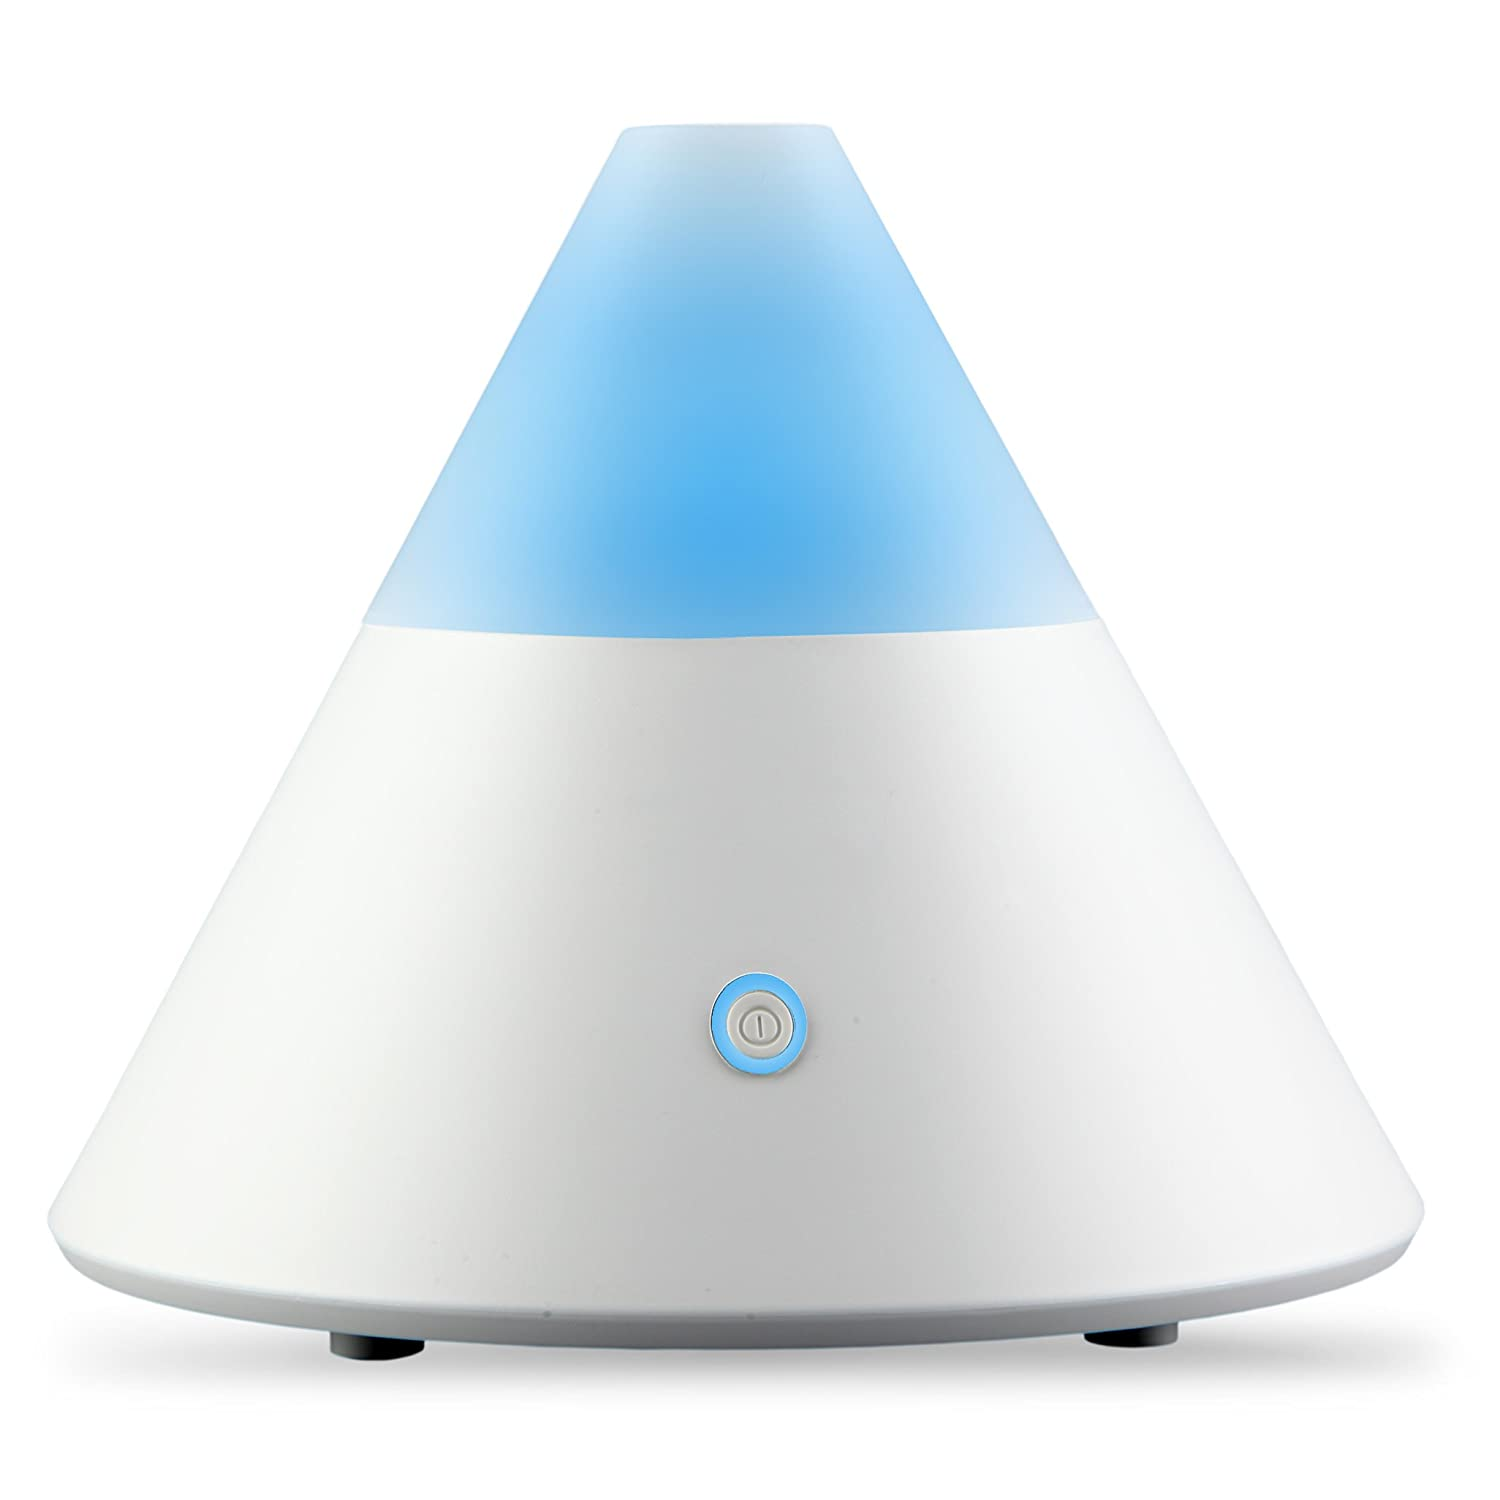 Best Essential Oil Diffuser Pyramid Electric Air Mist Aroma Humidifier  #1578B6